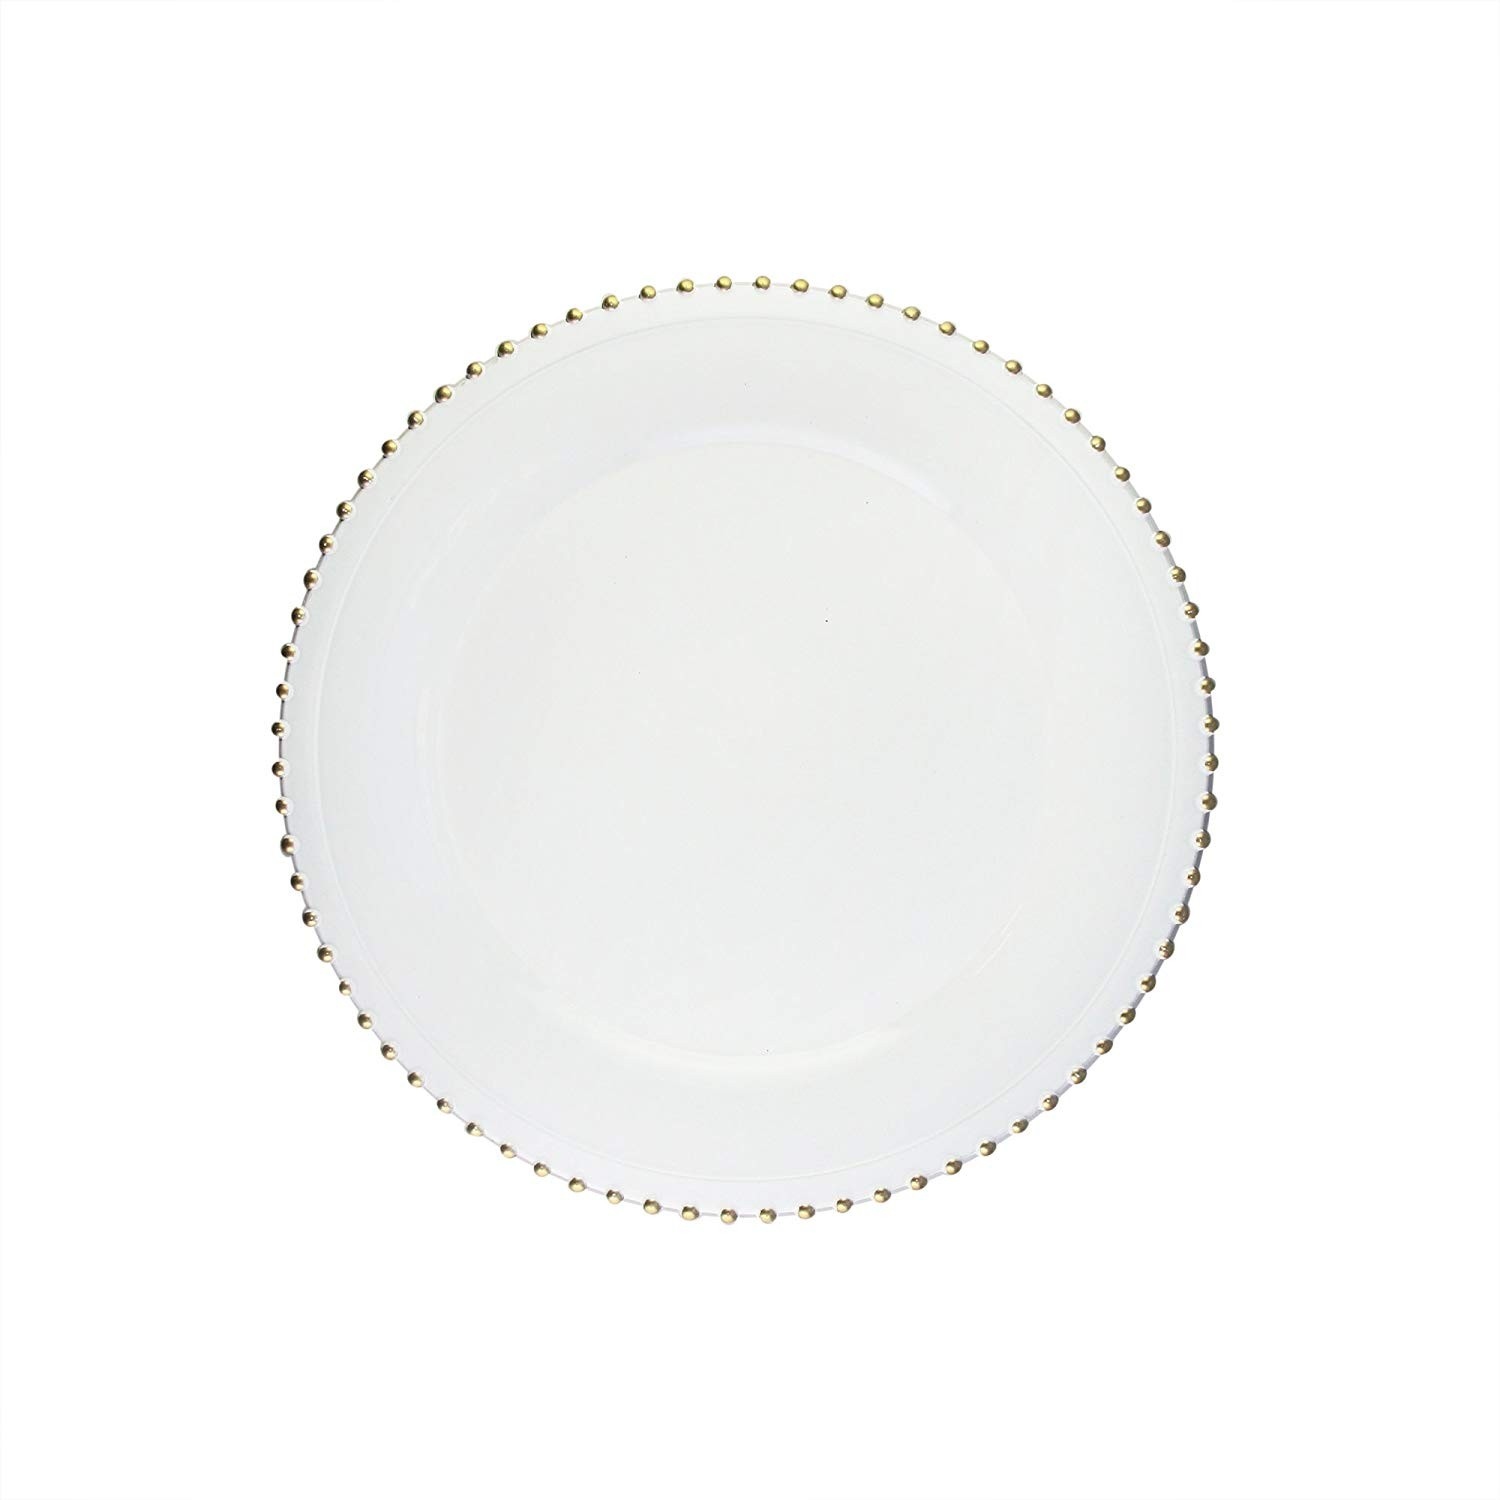 """Round Beaded Edge Charger Plates 13"""" Diameter, Set of 4 – WHITE/GOLD"""